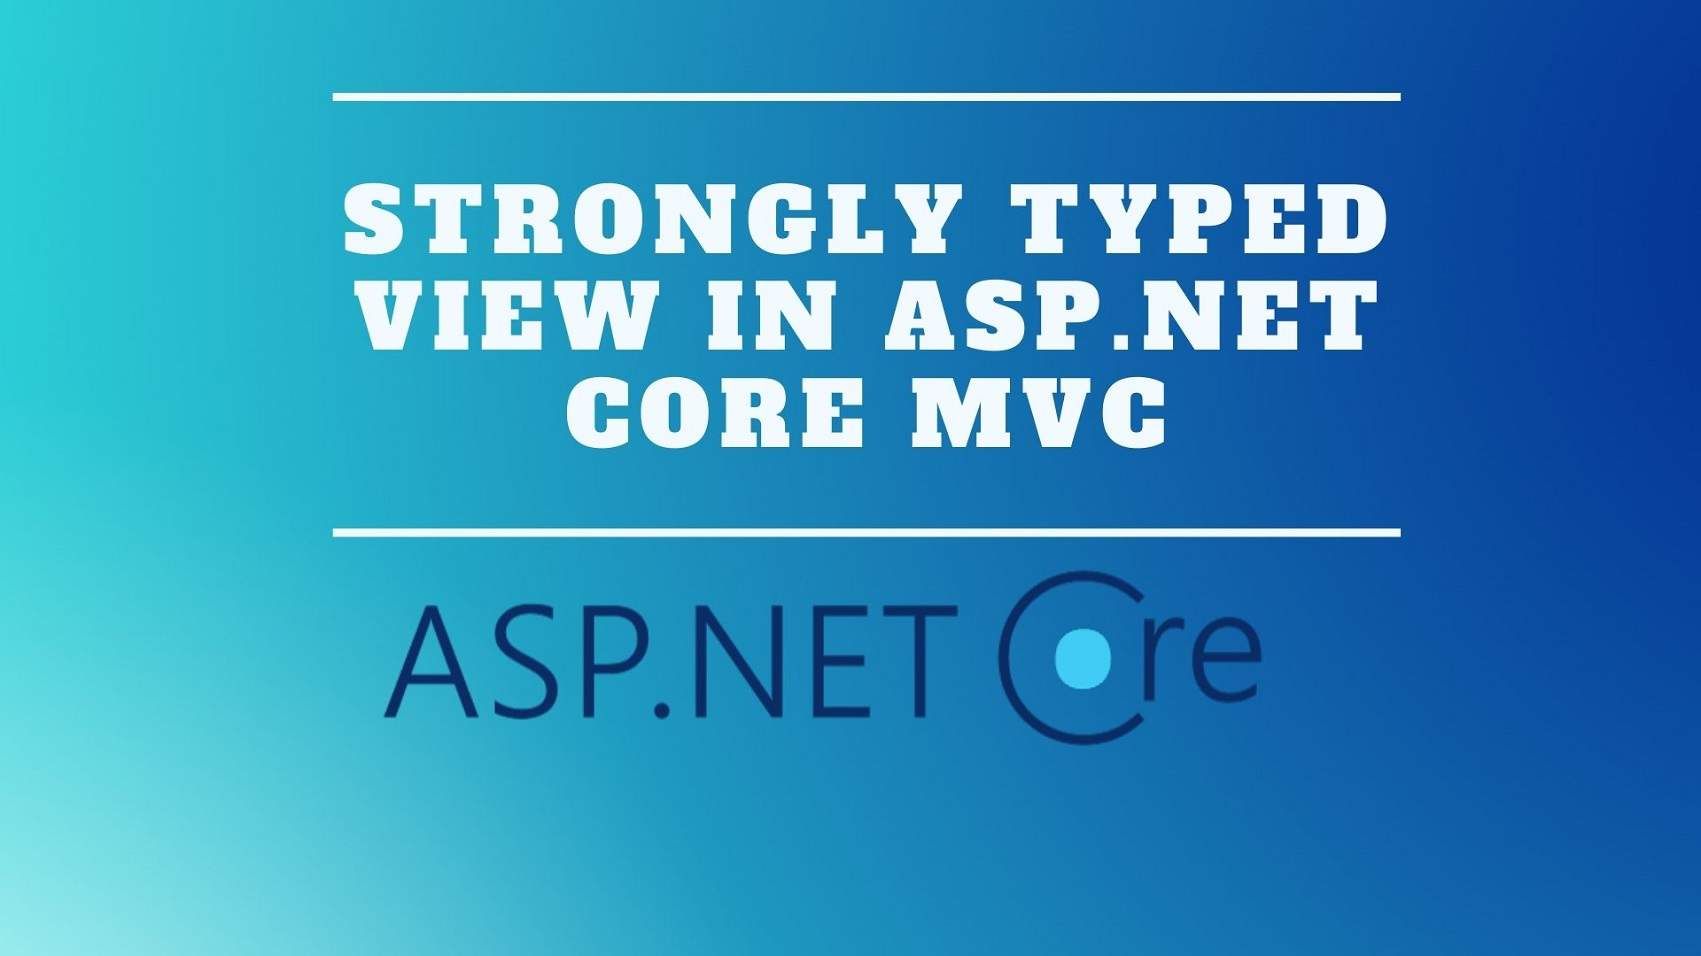 Strongly Typed View in ASP.NET Core MVC